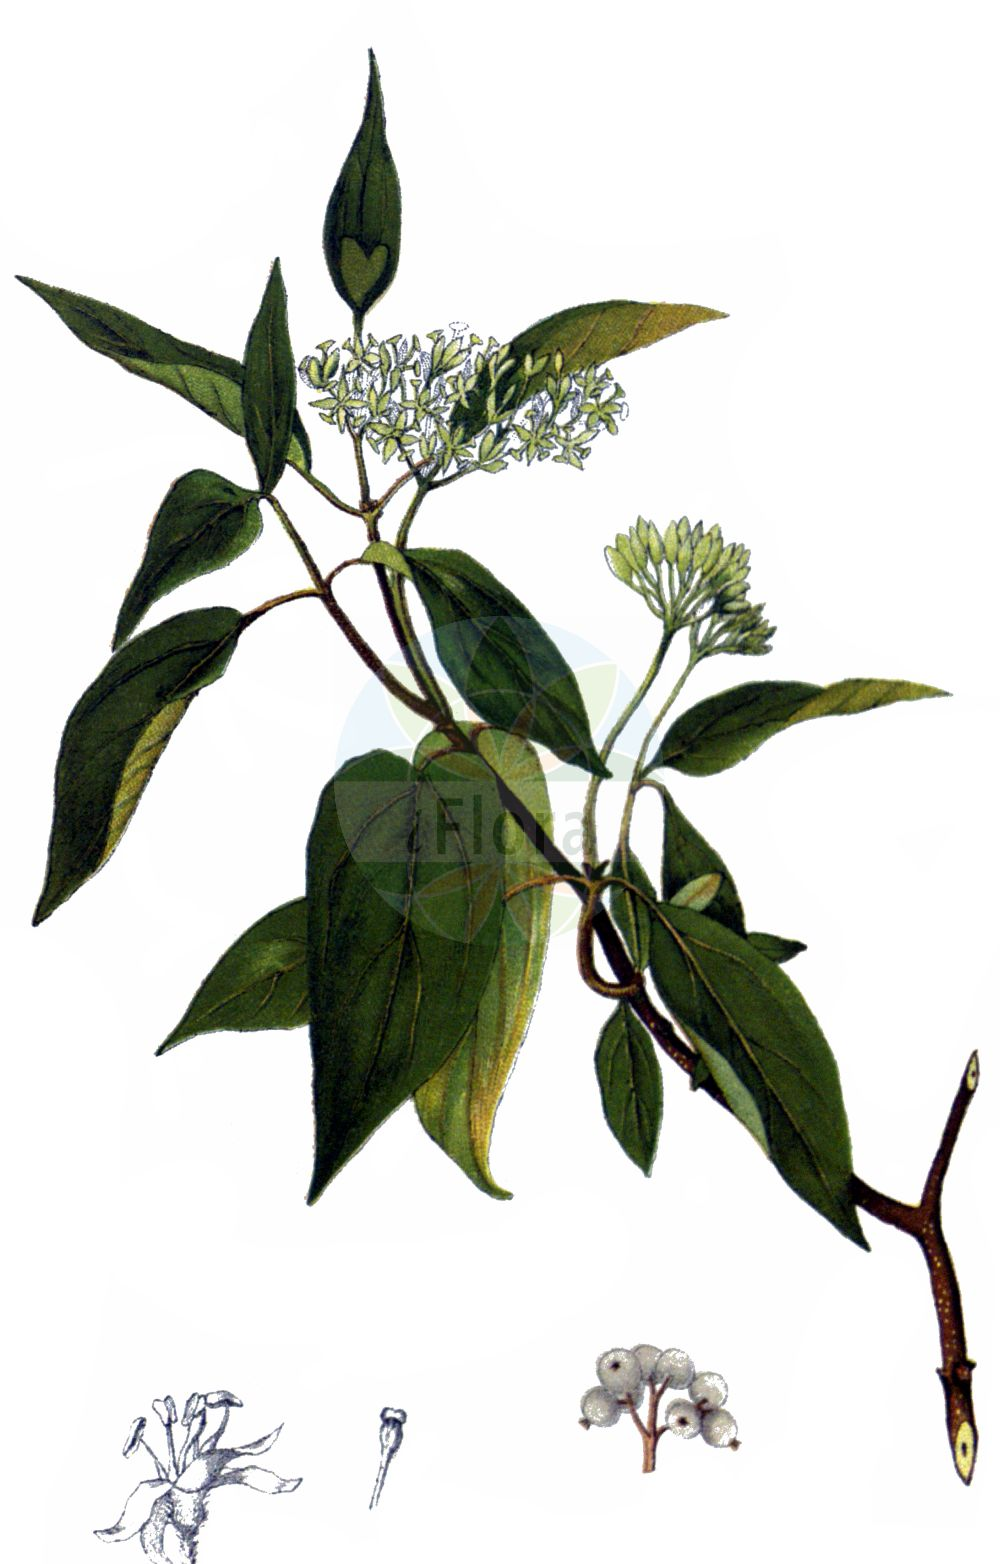 Historische Abbildung von Cornus sericea (Weisser Hartriegel - Red-osier Dogwood). Das Bild zeigt Blatt, Bluete, Frucht und Same. ---- Historical Drawing of Cornus sericea (Weisser Hartriegel - Red-osier Dogwood).The image is showing leaf, flower, fruit and seed.(Cornus sericea,Weisser Hartriegel,Red-osier Dogwood,Cornus sericea,Swida sericea,Thelycrania sericea,Weisser Hartriegel,Red-osier Dogwood,Cornus,Hartriegel,Cornel,Cornaceae,Hartriegelgewaechse,Dogwood family,Blatt,Bluete,Frucht,Same,leaf,flower,fruit,seed,Millspaugh (1892))